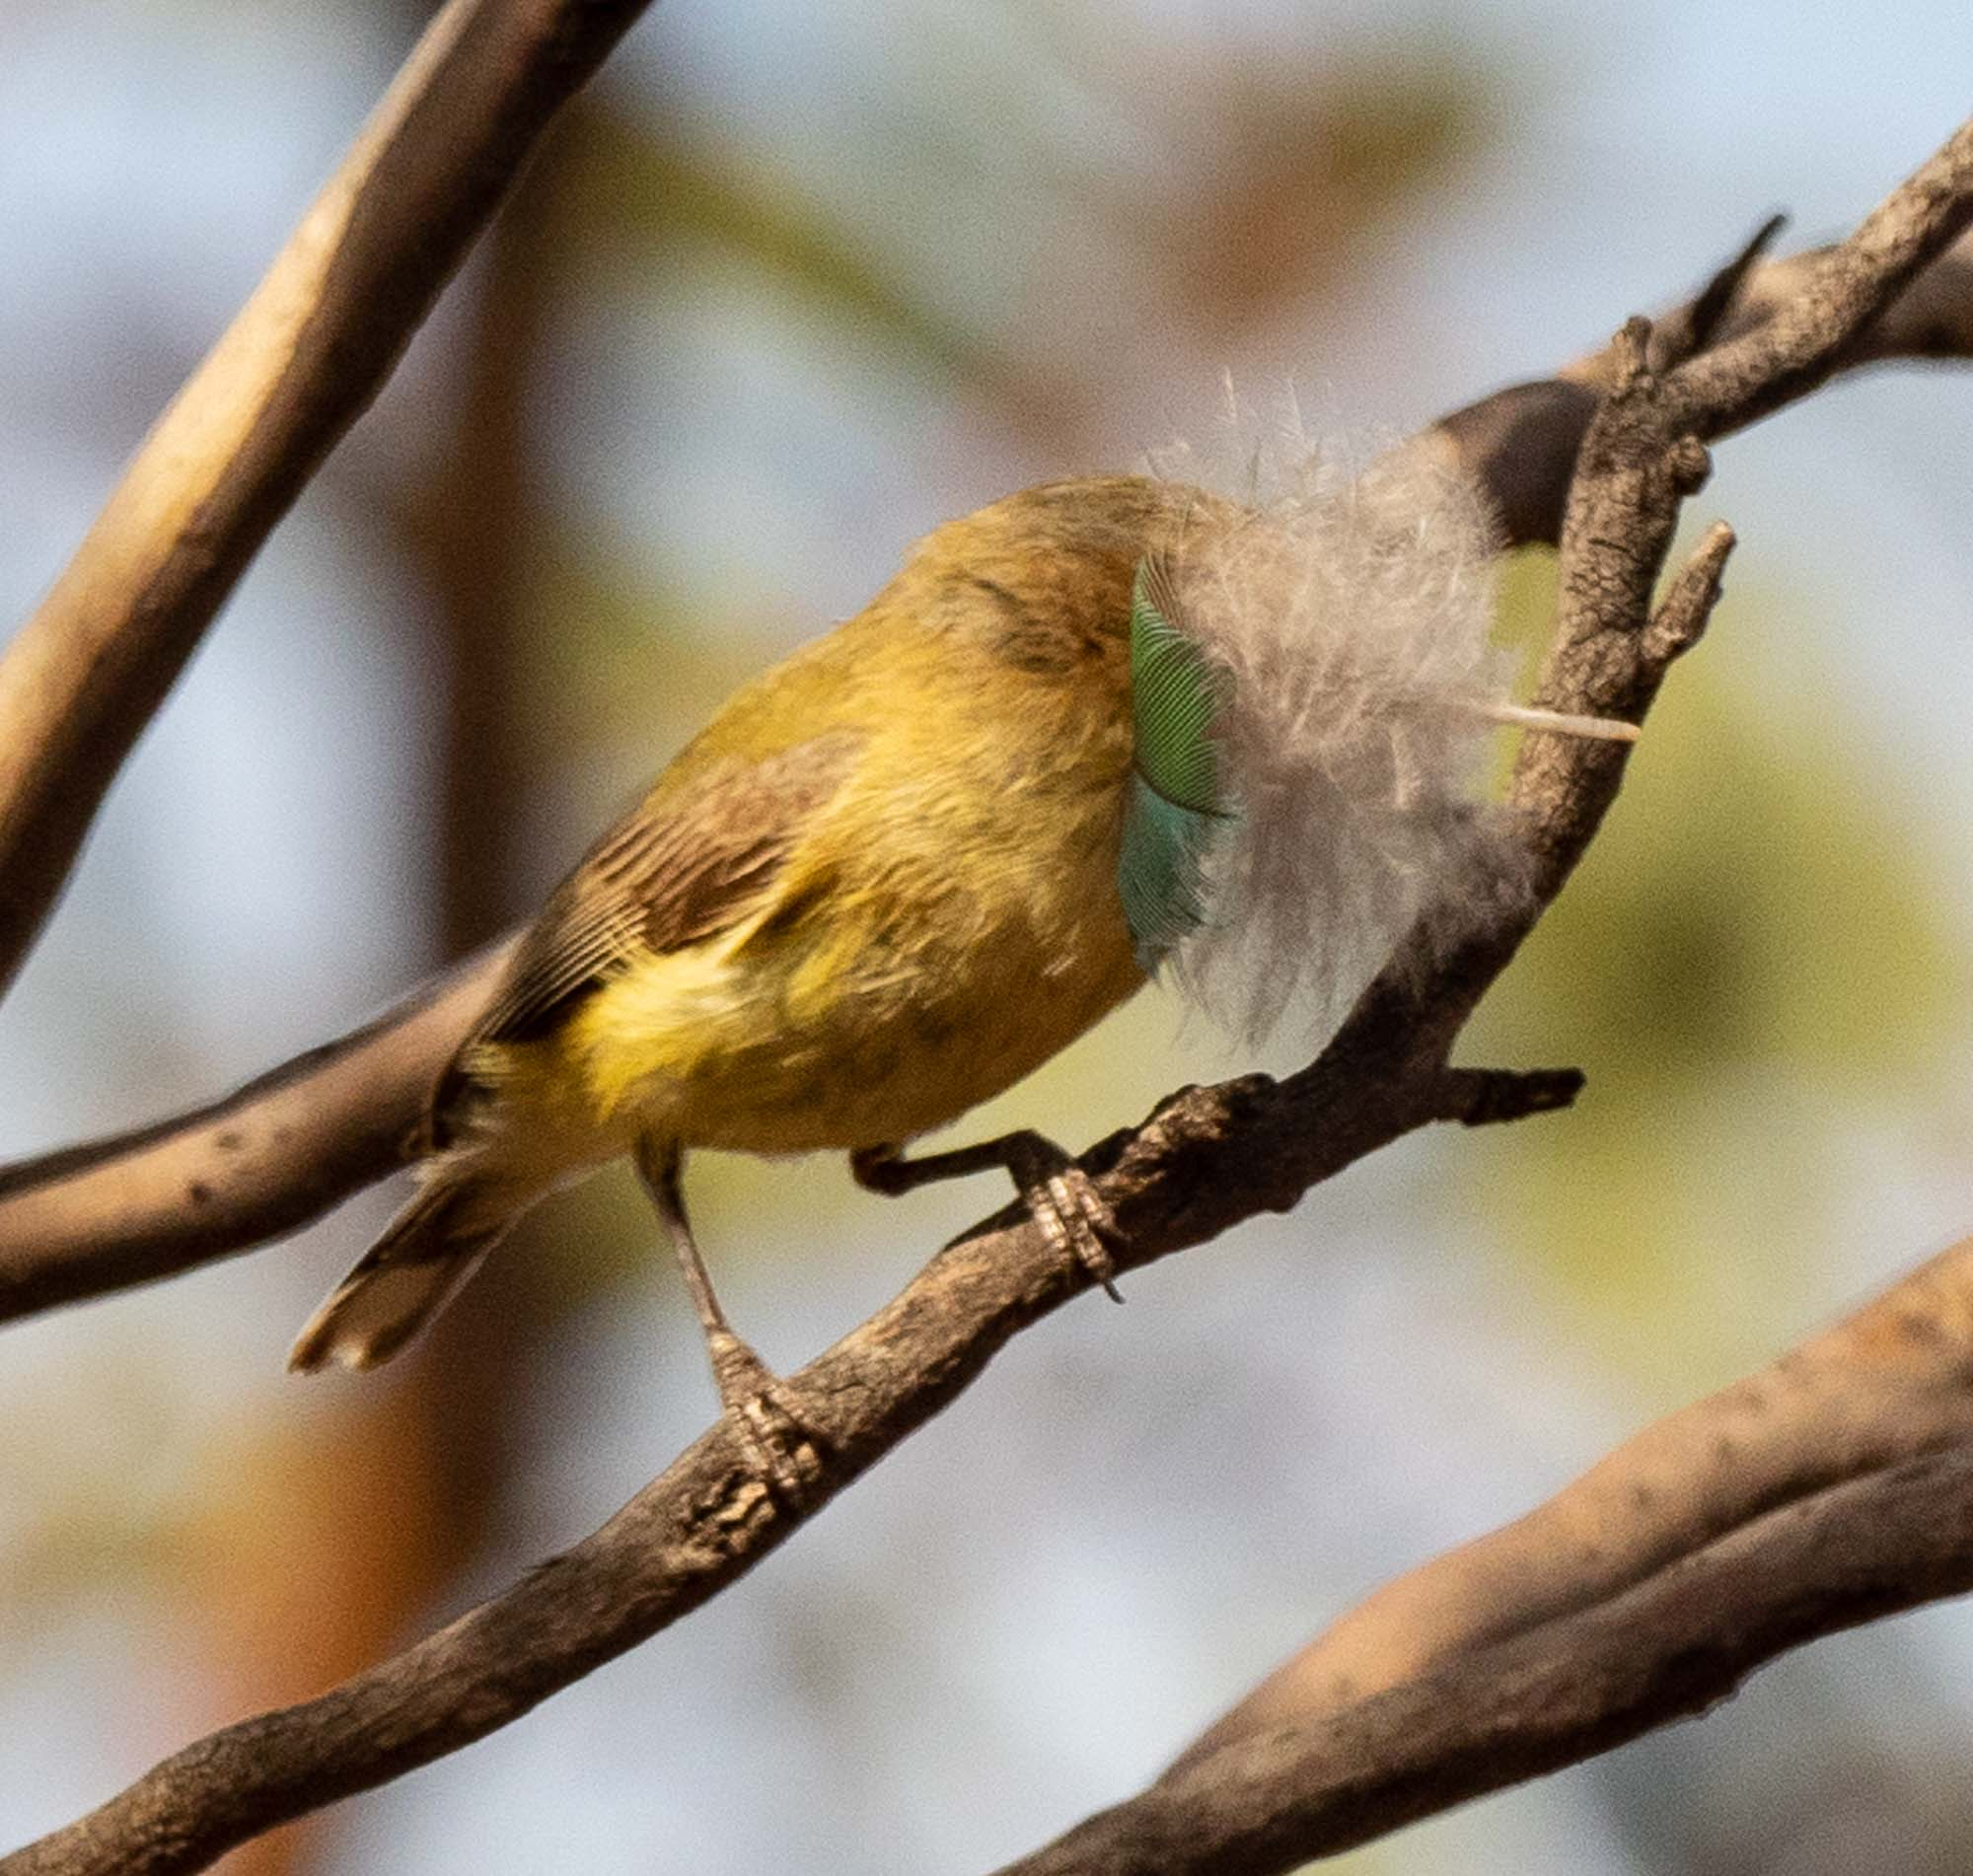 nest-building Weebill, with a prized feather